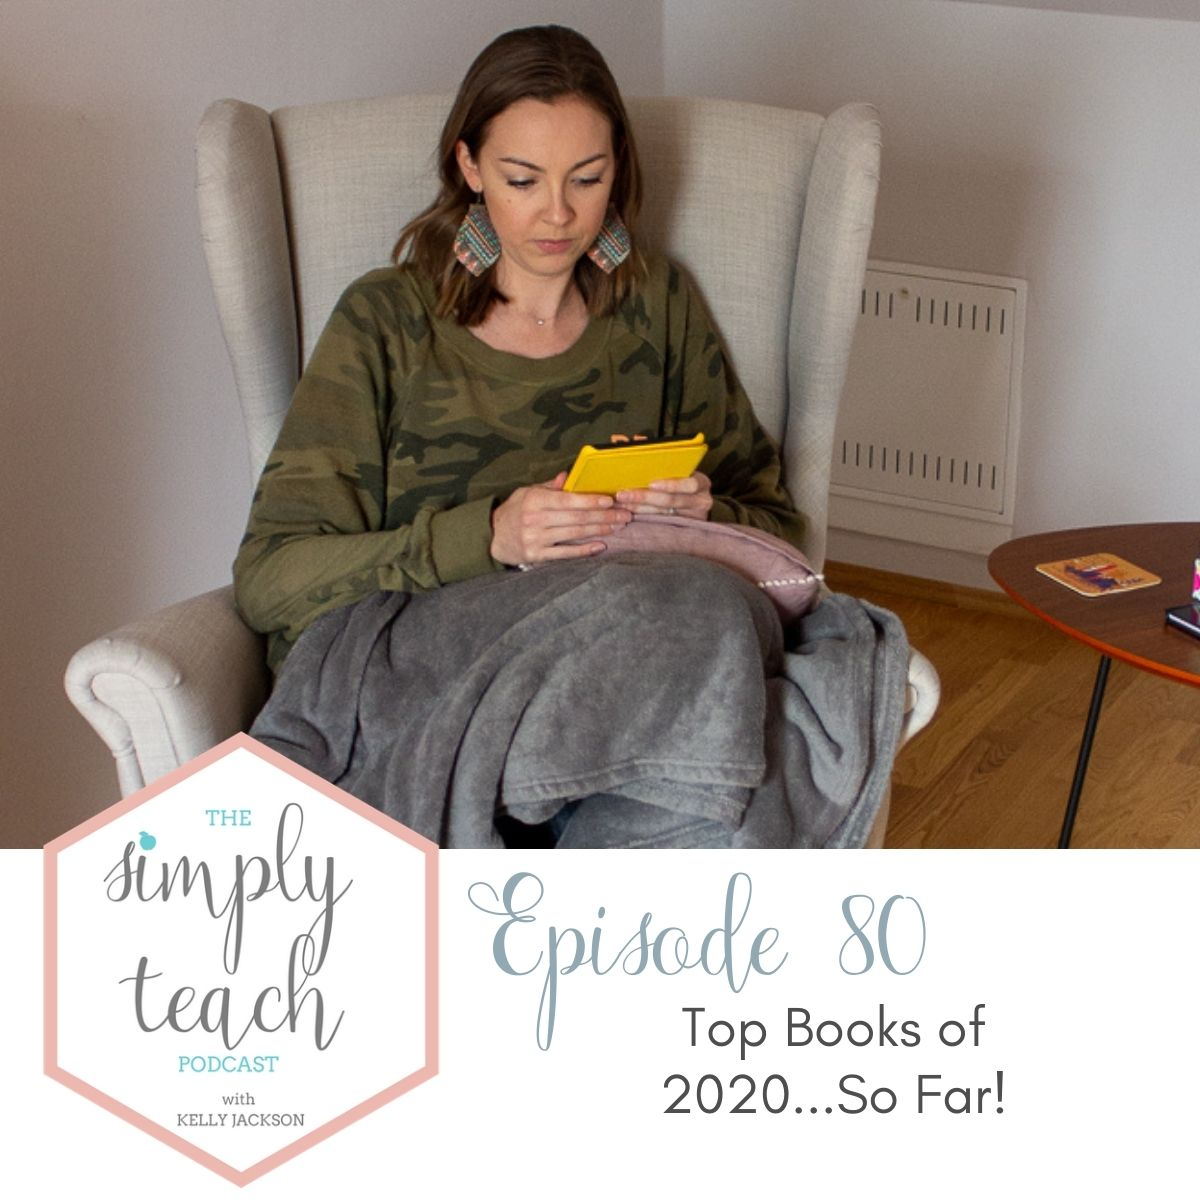 girl sitting in chair reading a book with podcast episode information- episode 80- top books of 2020